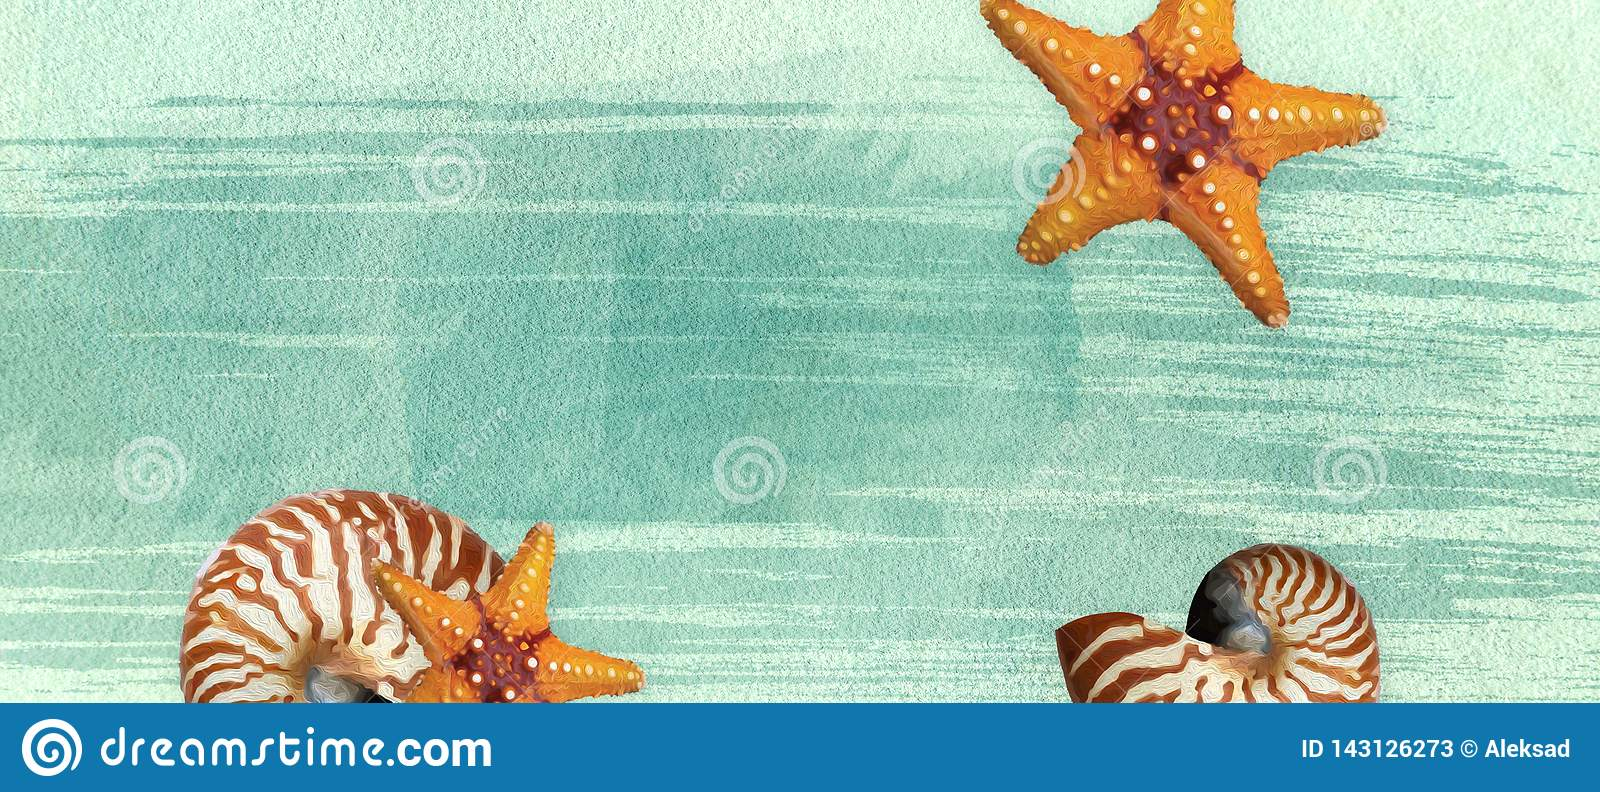 Summer banner with oil paint and watercolor brushes. Seashell, starfish on a marine background with text space.